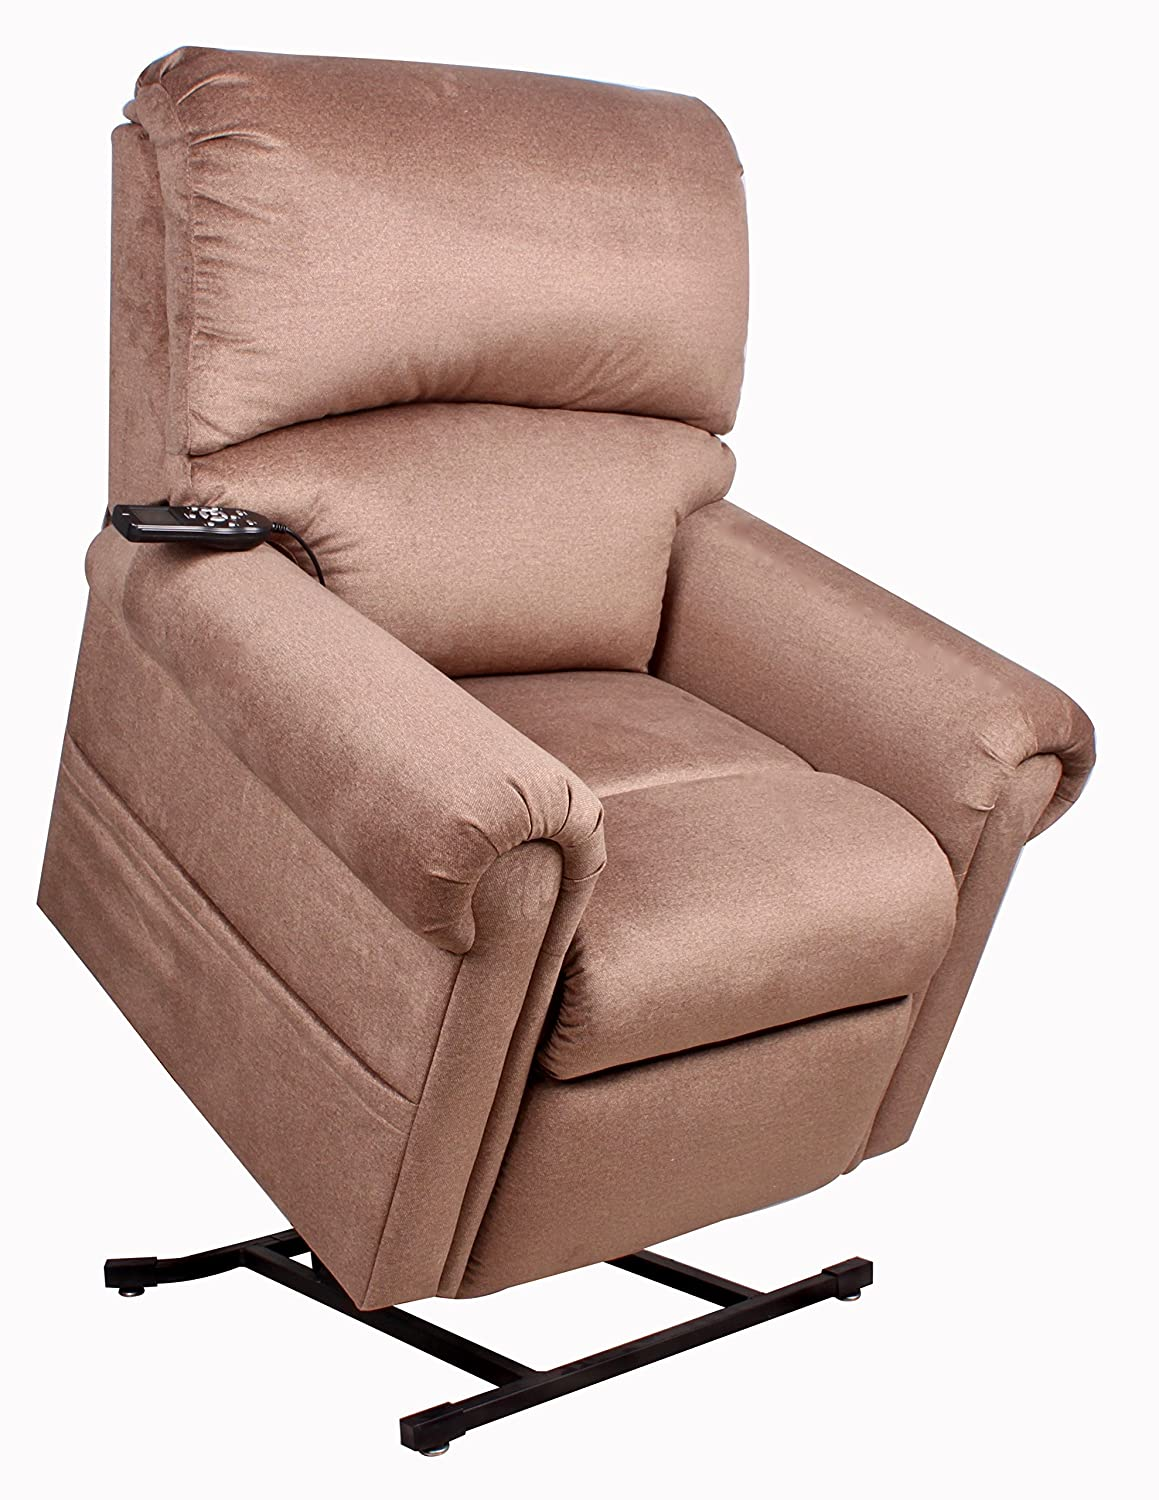 Amazon.com: THERAPEDIC Lift Chair Recliner, The \